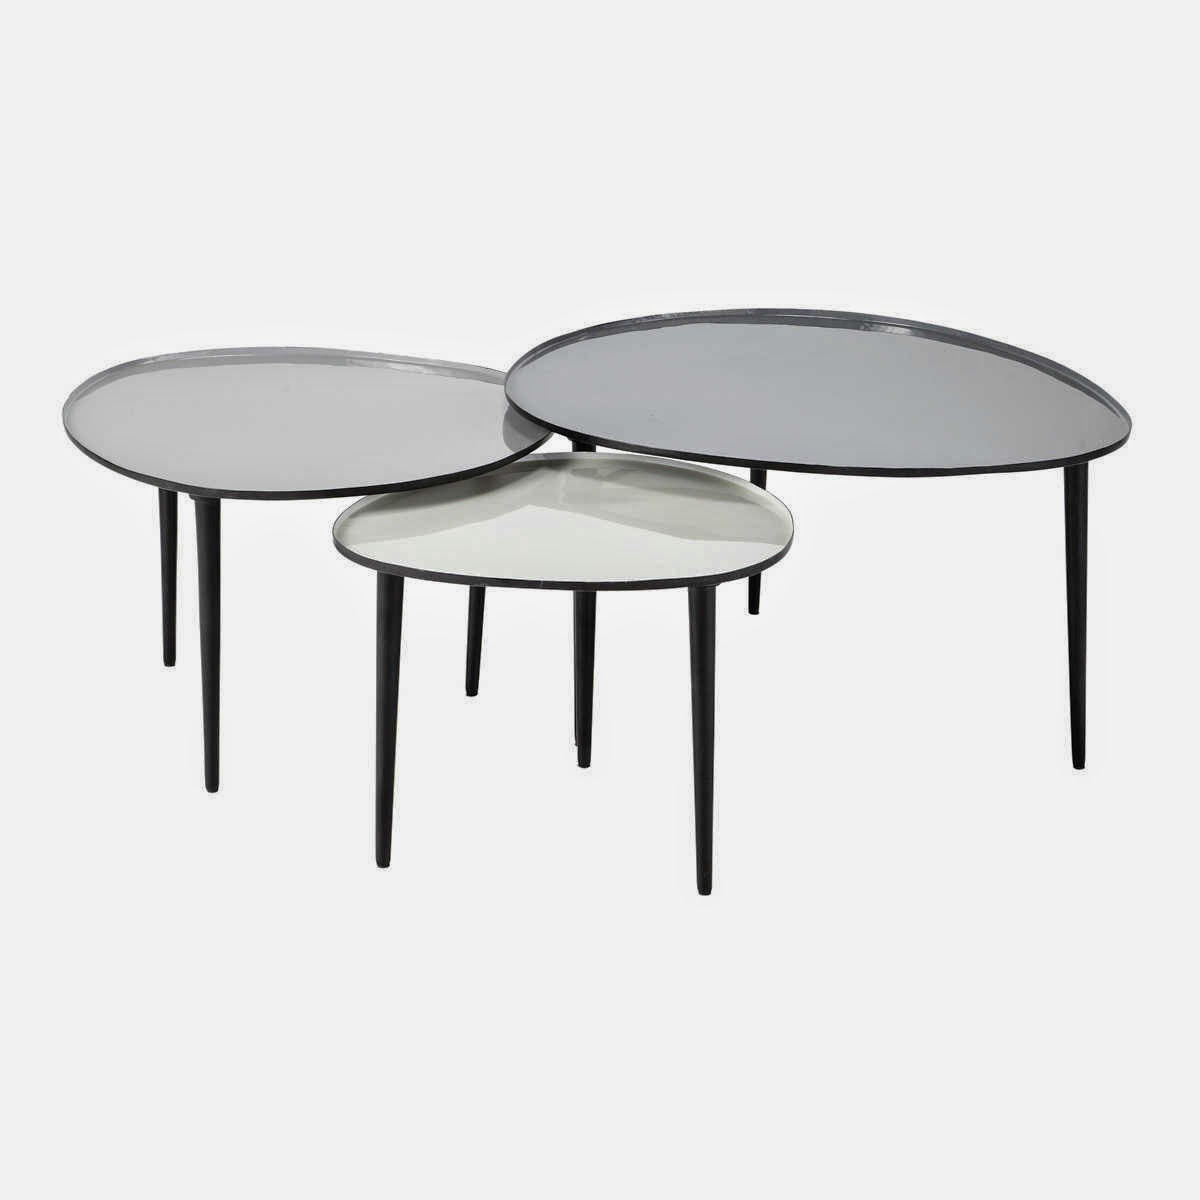 Les tables basses gigognes caract rielle bloglovin 39 - Table basses gigogne ...